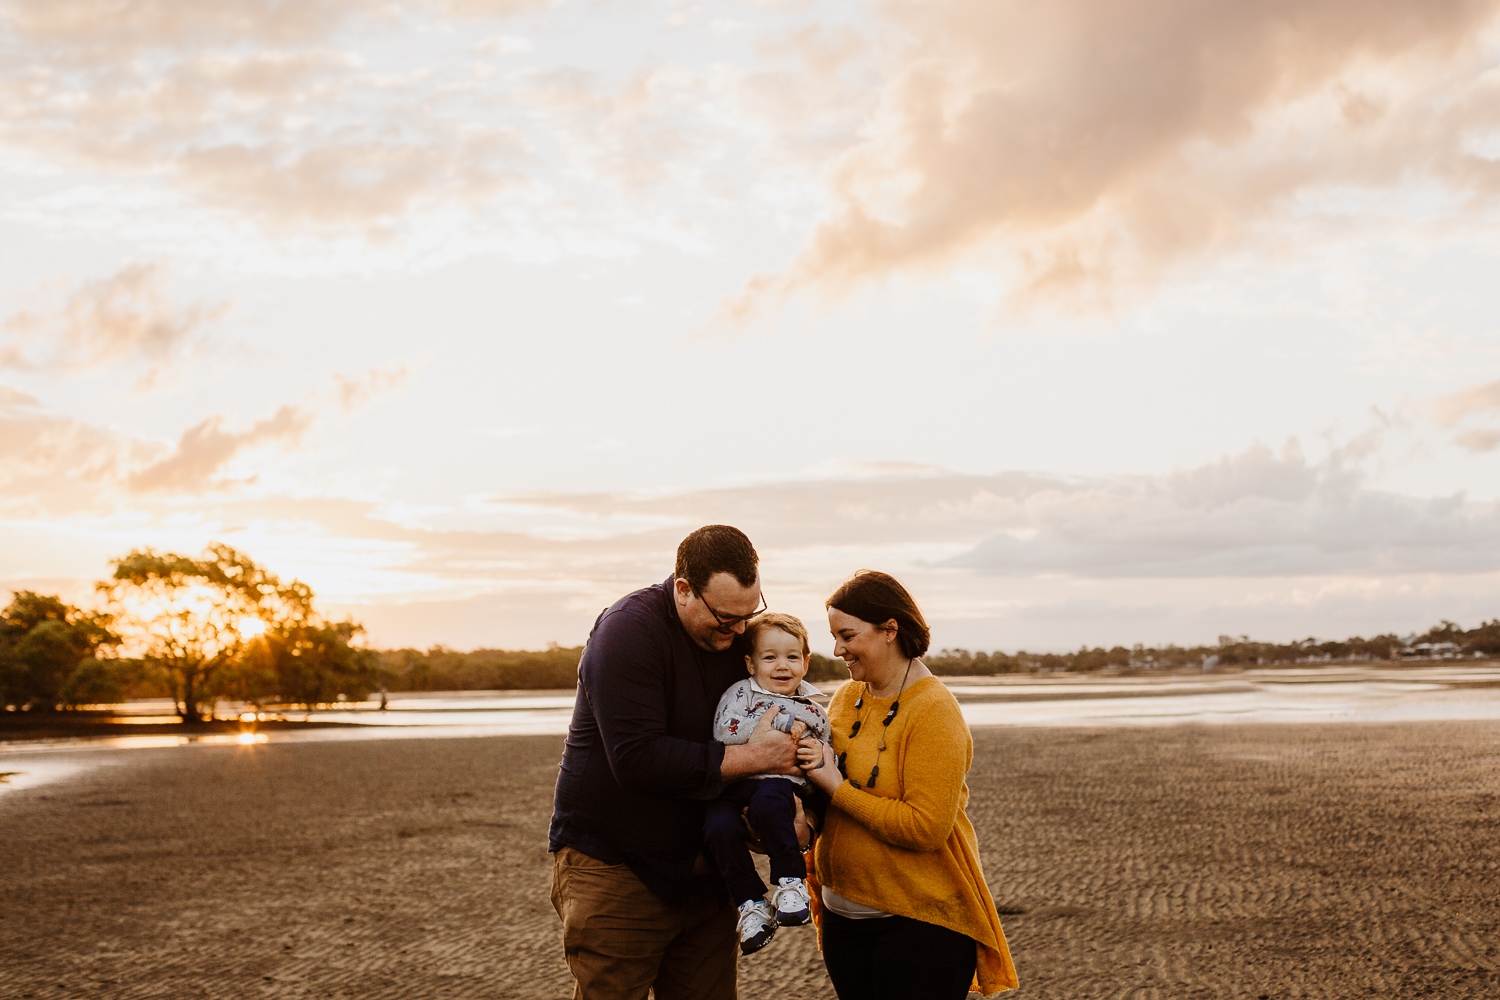 Family photography Brisbane Rebecca Banush Photography73.jpg